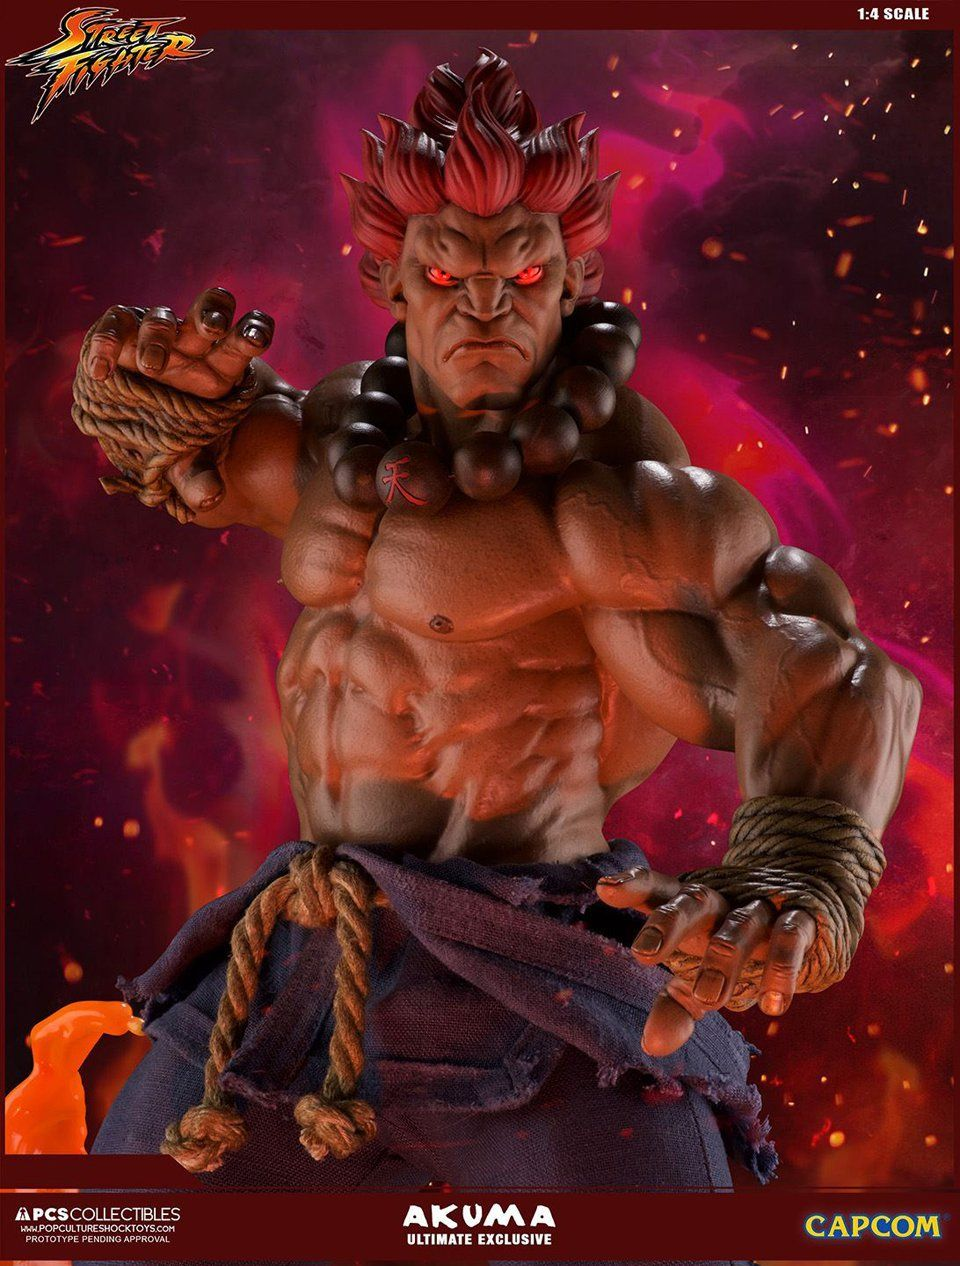 Akuma 1 4 Ultimate Ex Statue Street Fighter Art Street Fighter